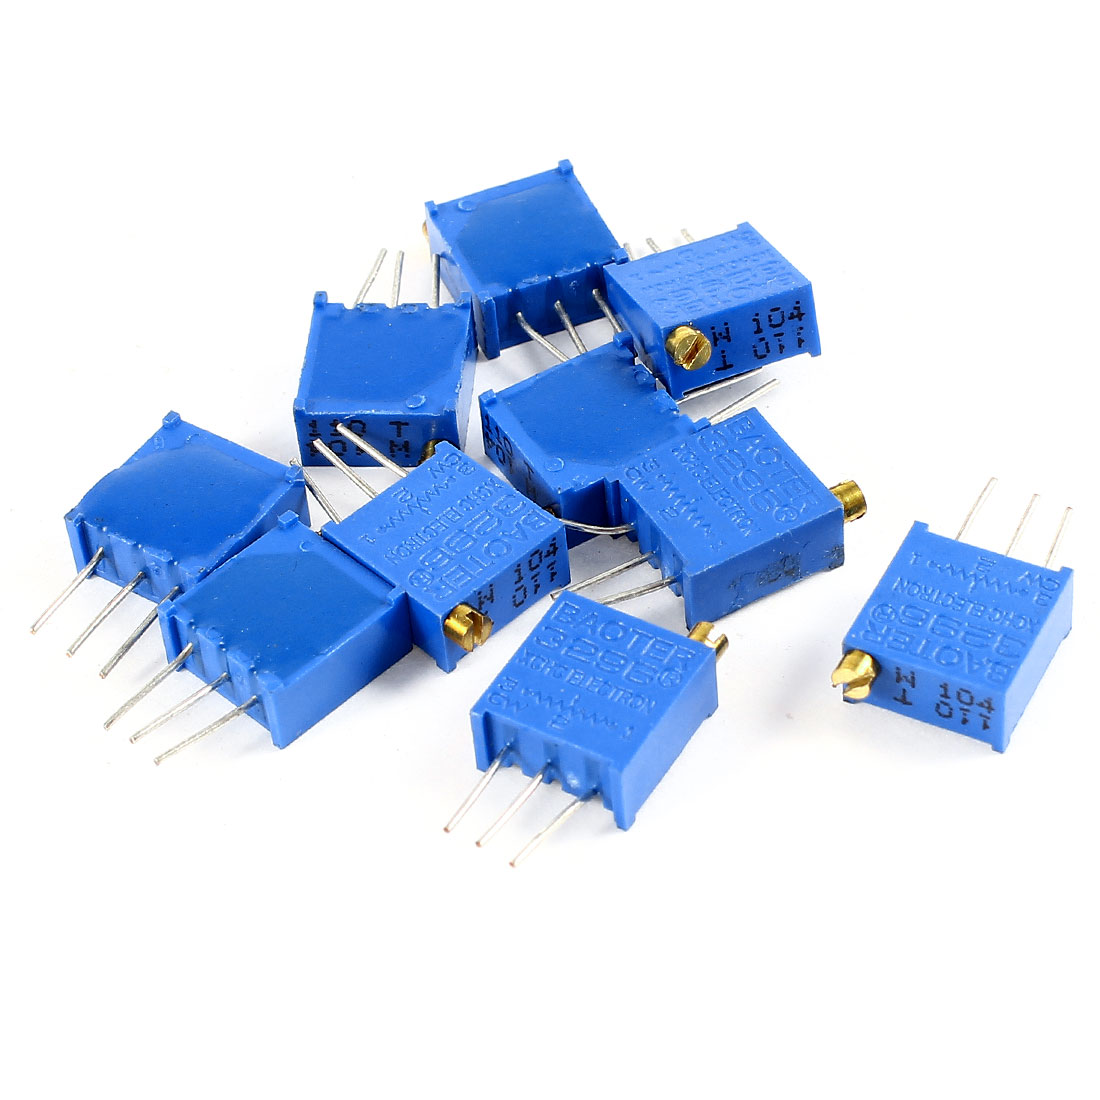 10Pcs 3296W-104 100K ohm 3 Pins High Precision Adjustable Resistor Trim Pot Potentiometer Trimmer